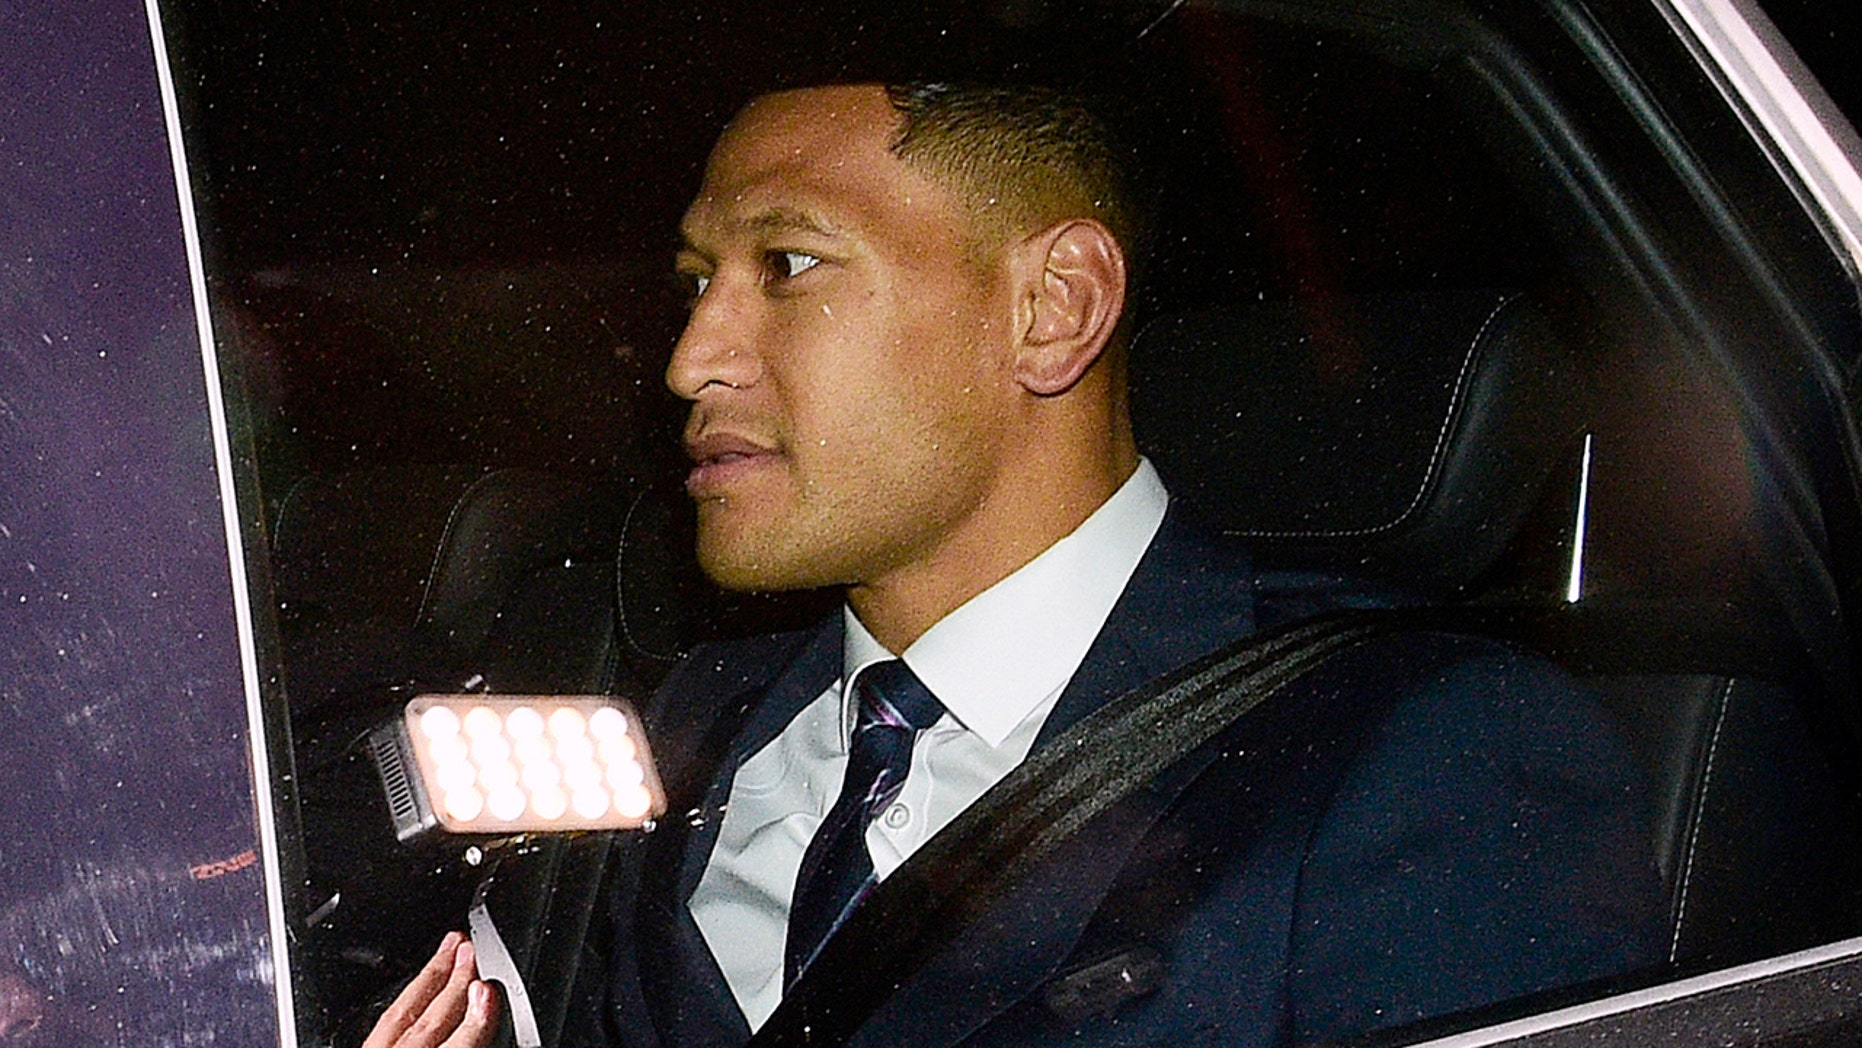 Israel Folau's $4m contract terminated over 'hell awaits gay people' comments